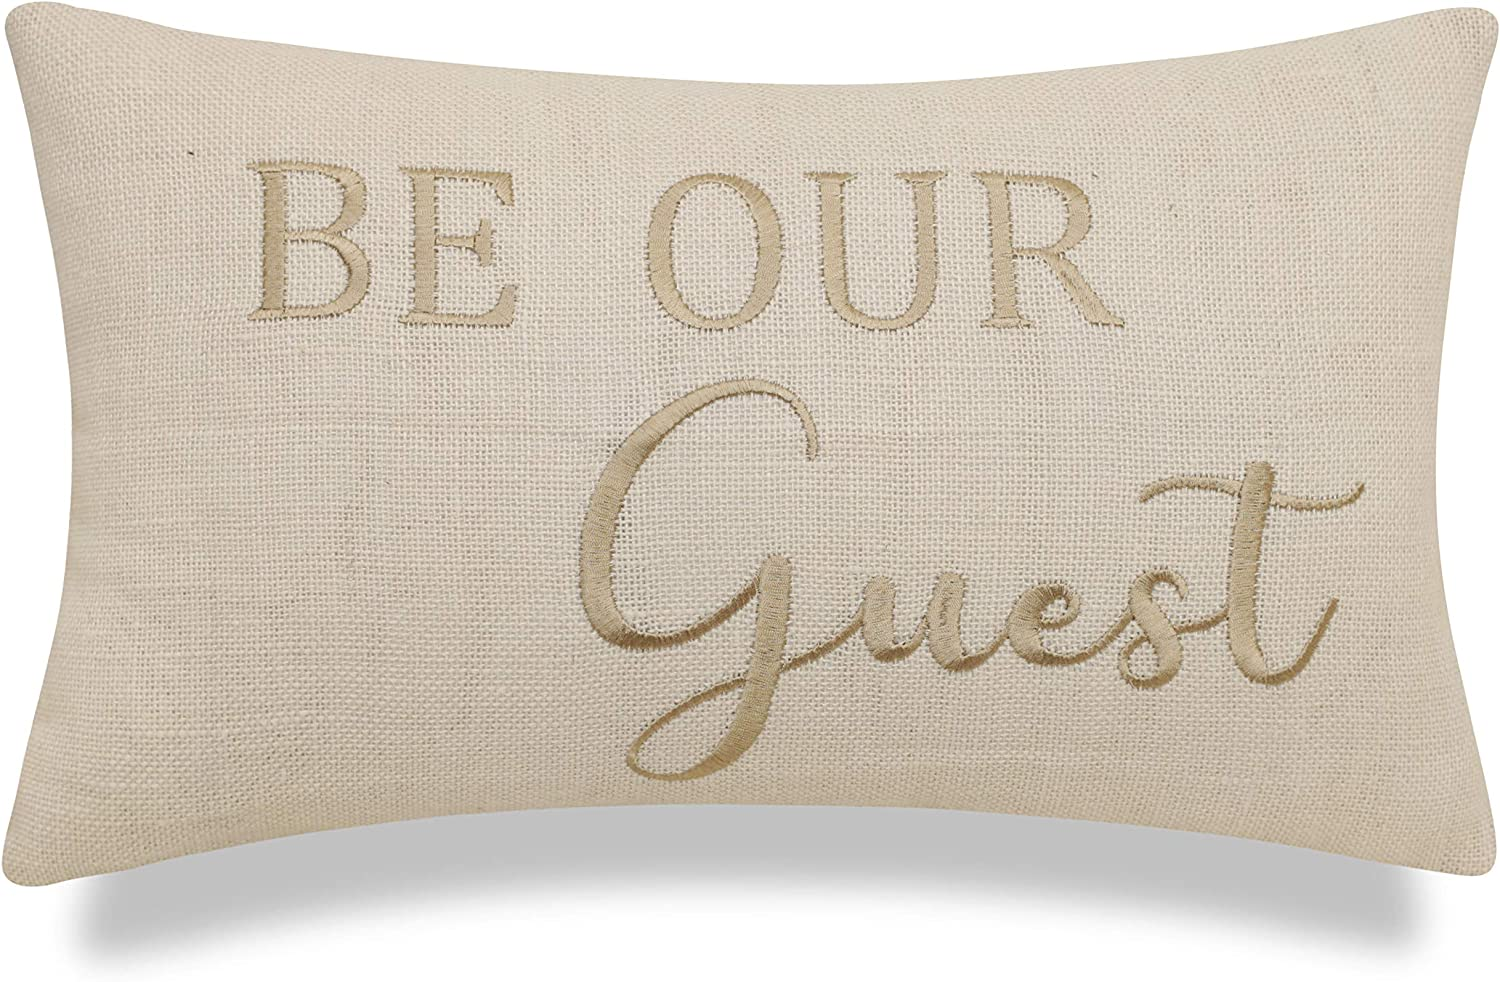 EURASIA DECOR Be Our Guest Embroidered Burlap Decorative Lumbar Accent Throw Pillow Cover - Entryway Decor - Offwhite, 12x20